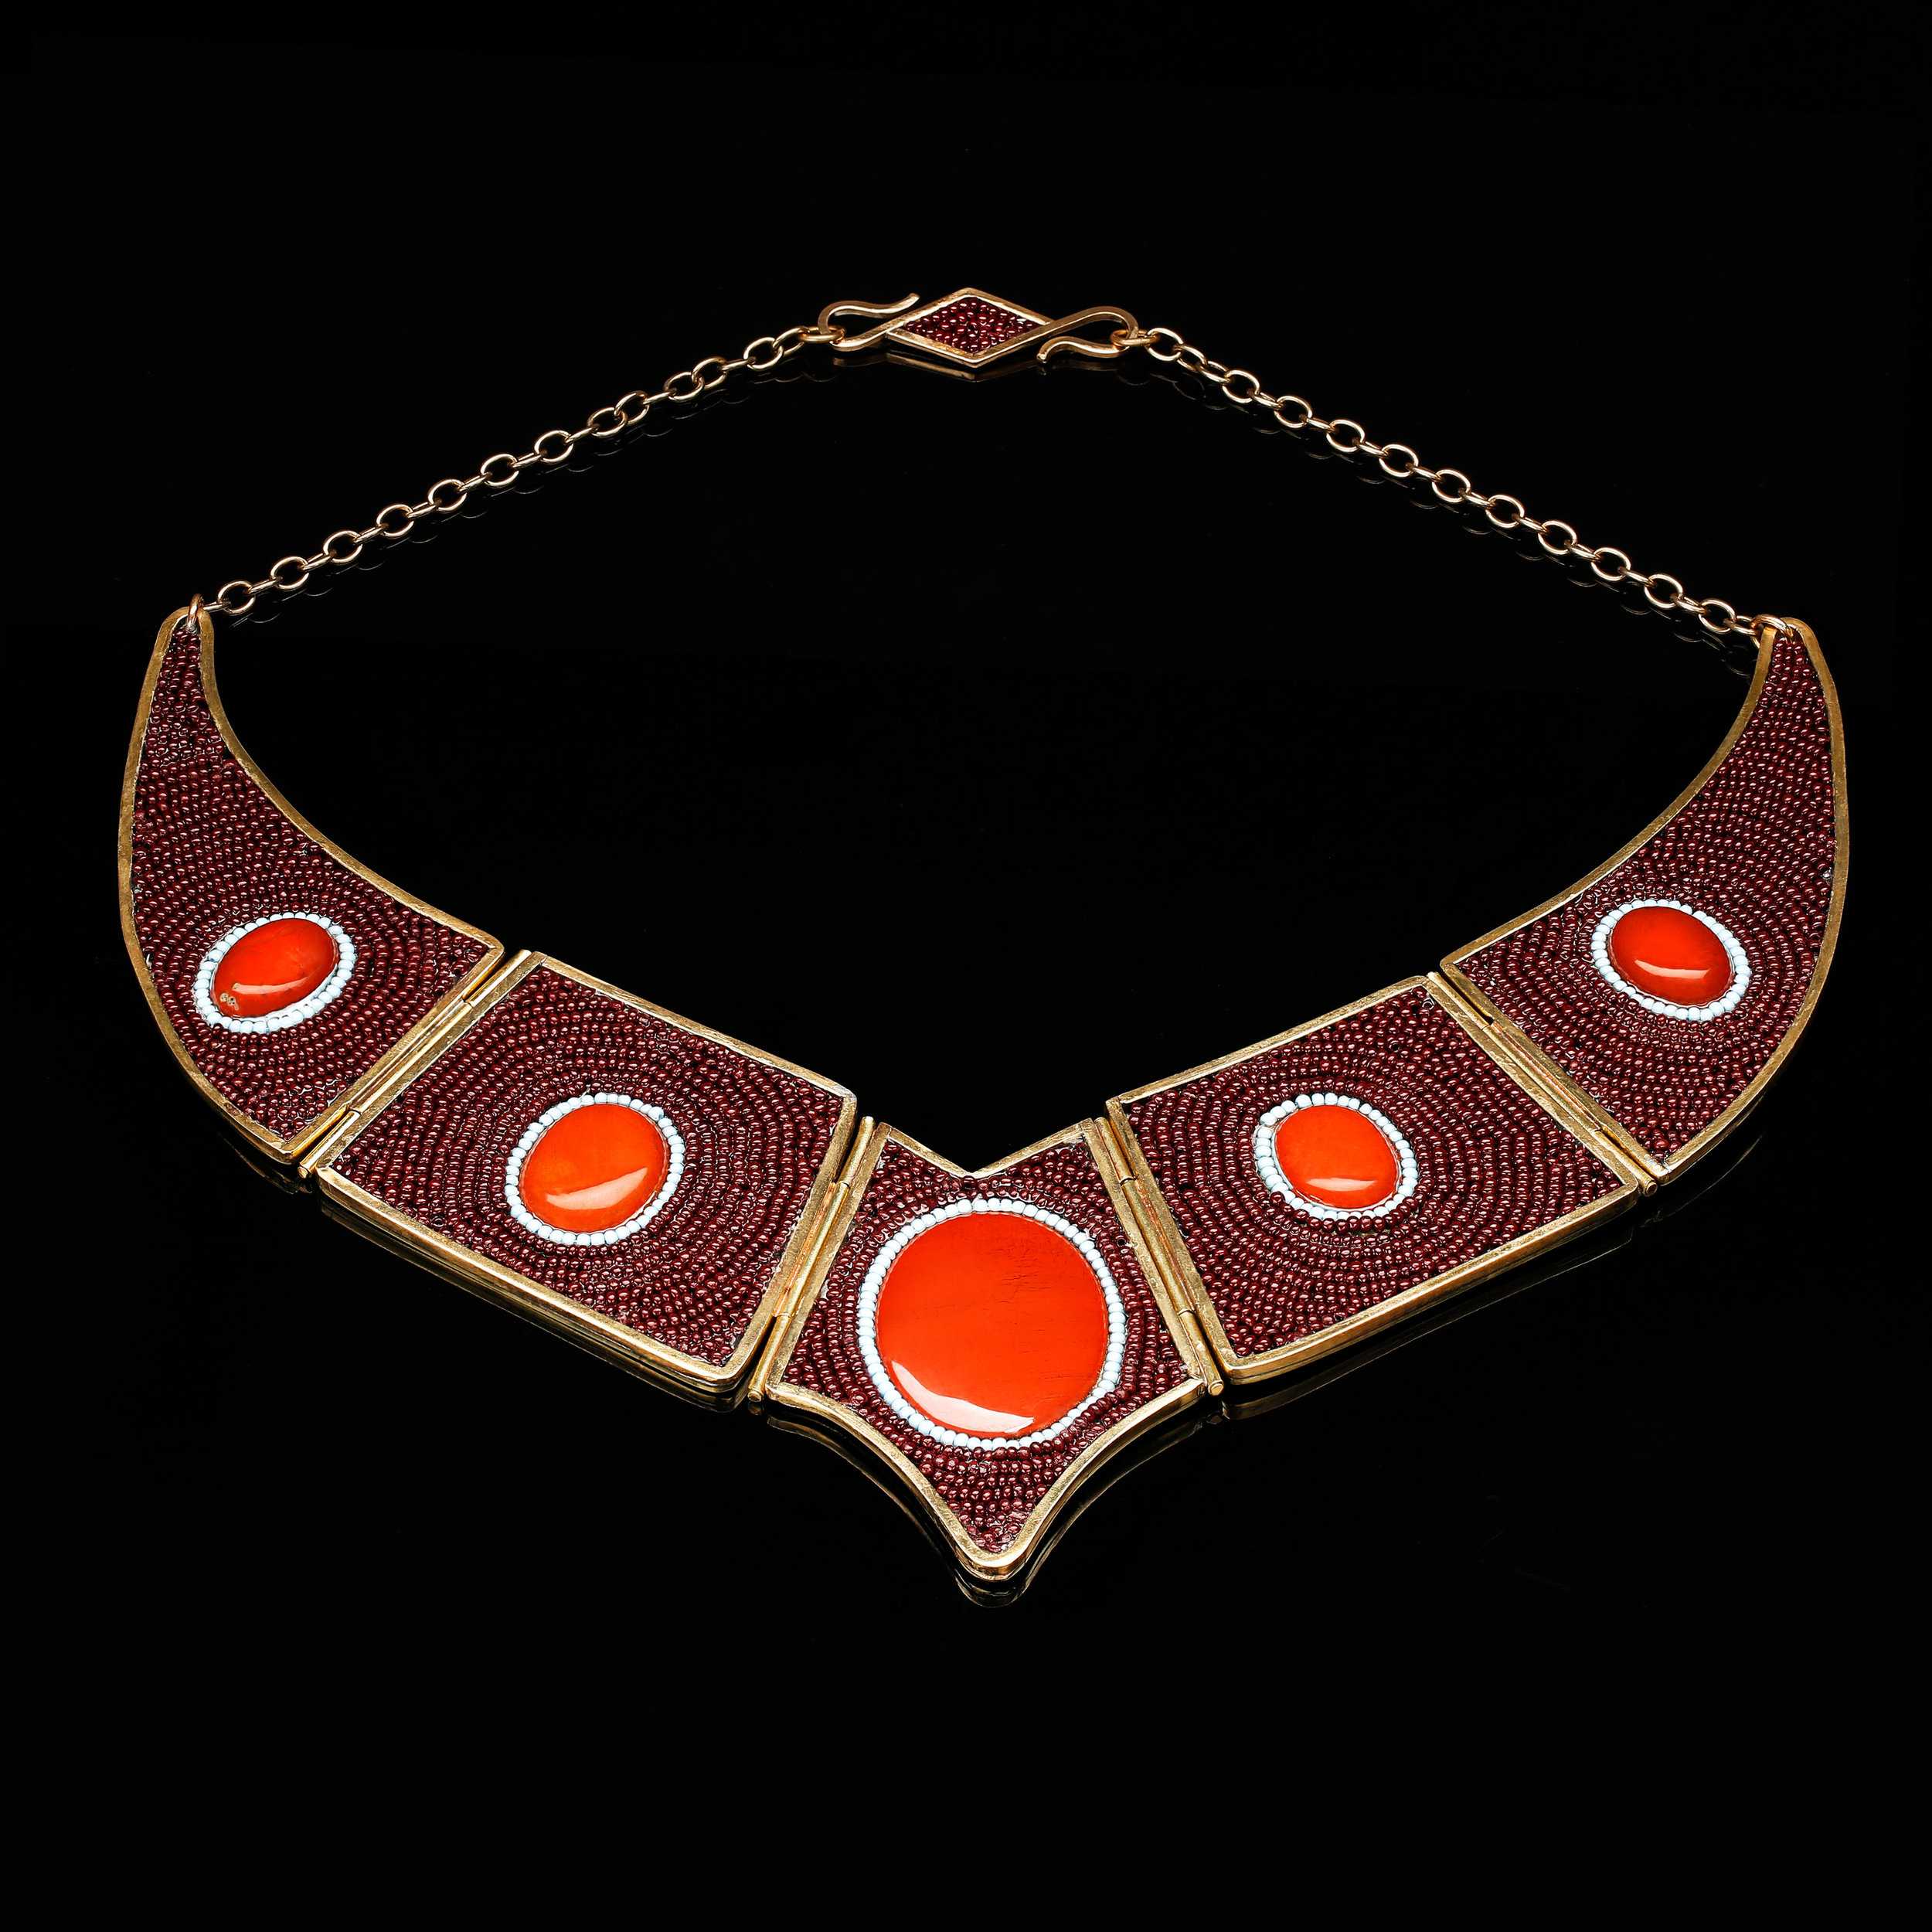 Emerging Jewelry Artist 18 Years of Age or Younger